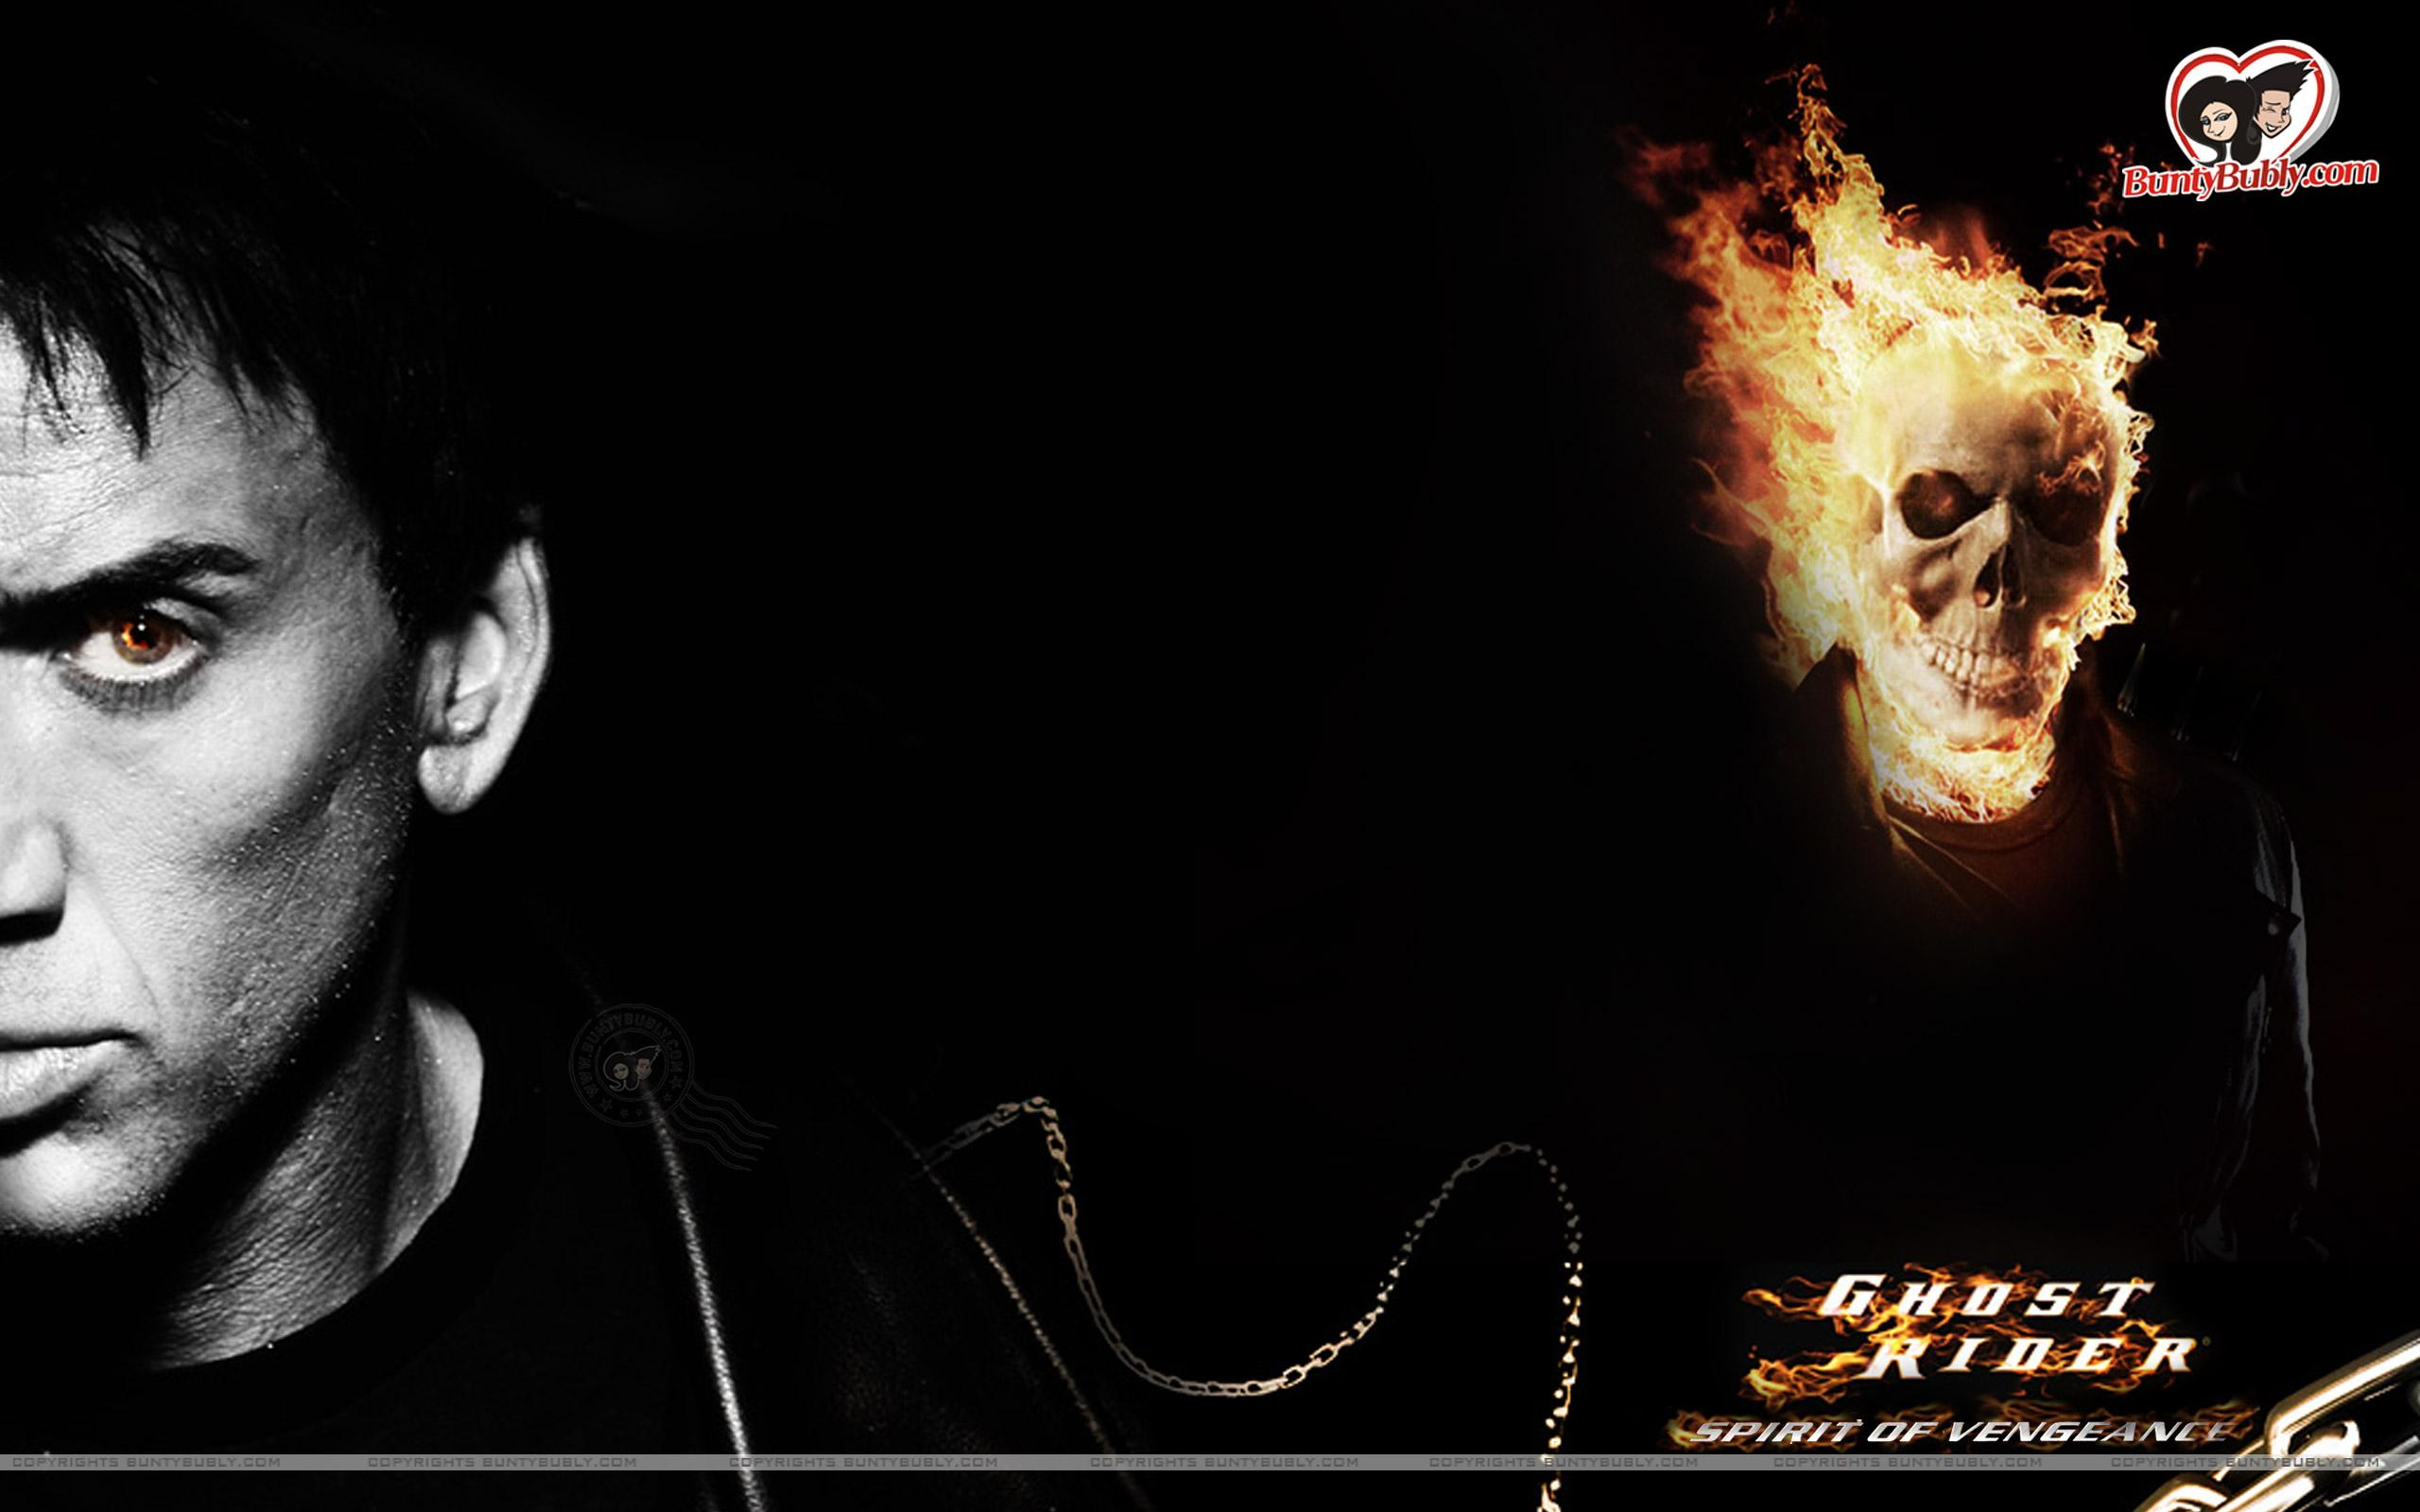 Pin Ghost Rider Screensaver Animated Wallpaper Download Torrent Tpb on 2560x1600